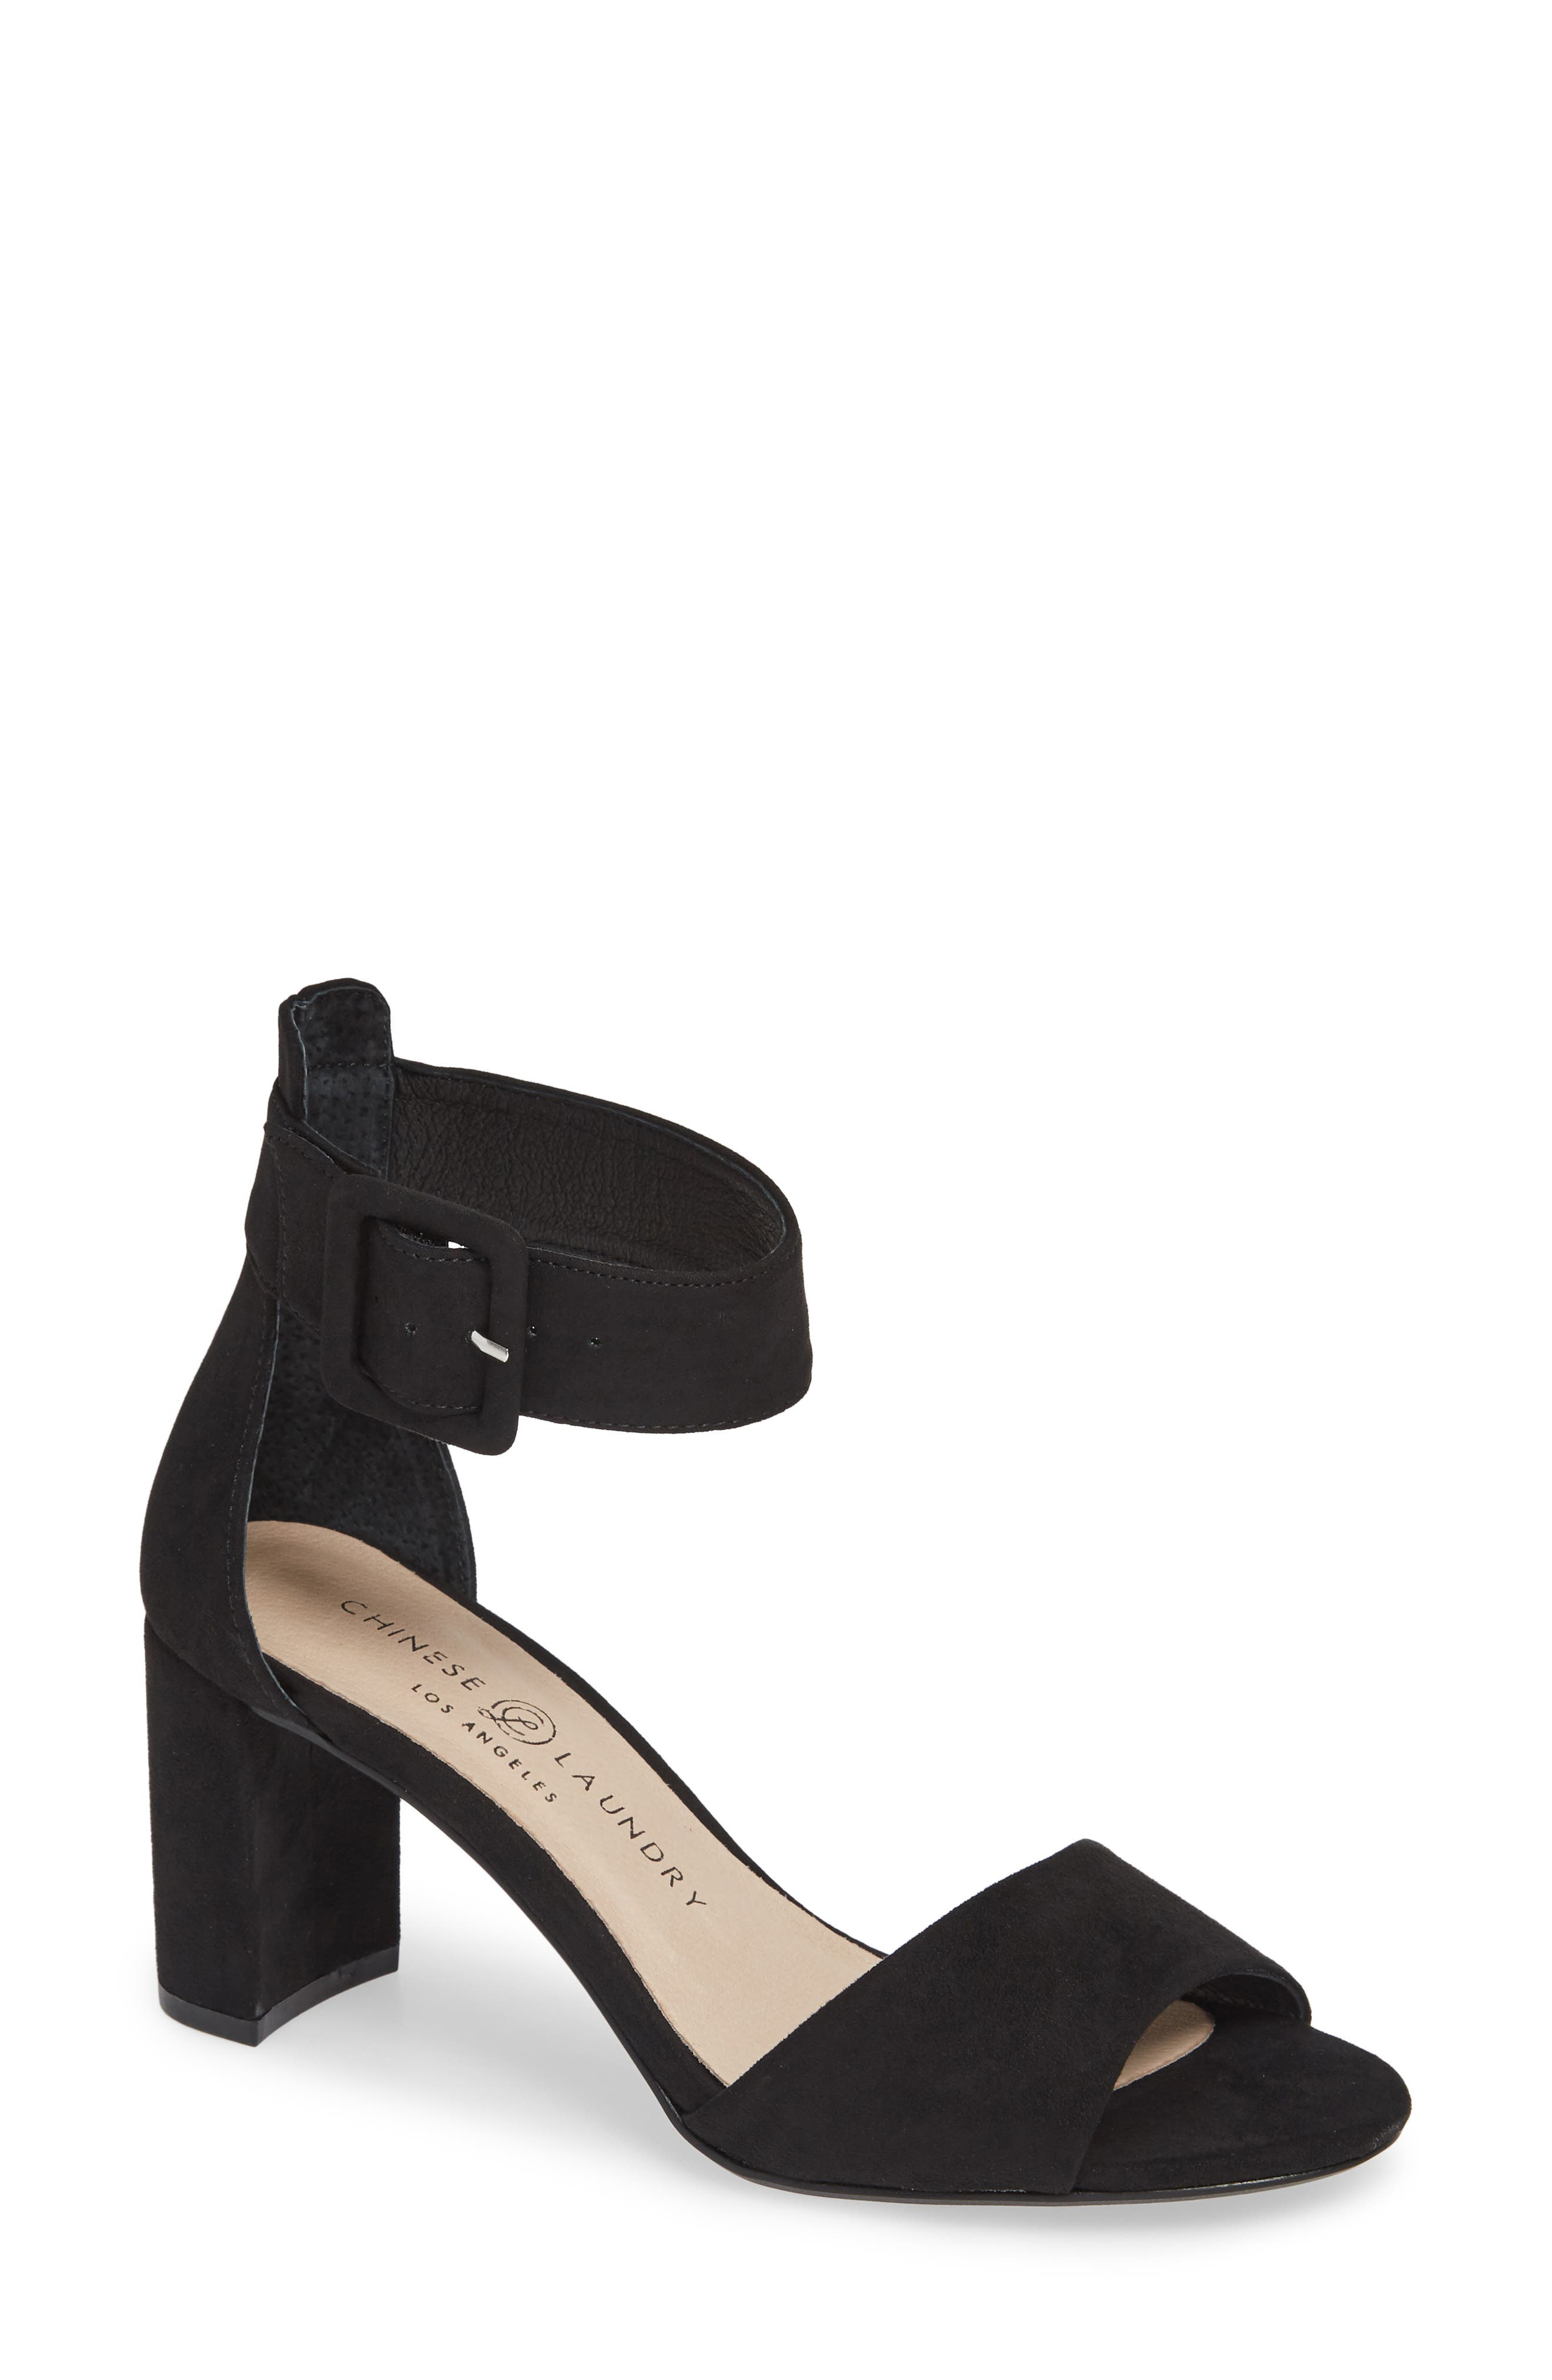 CHINESE LAUNDRY,                             Rumor Sandal,                             Main thumbnail 1, color,                             BLACK SUEDE